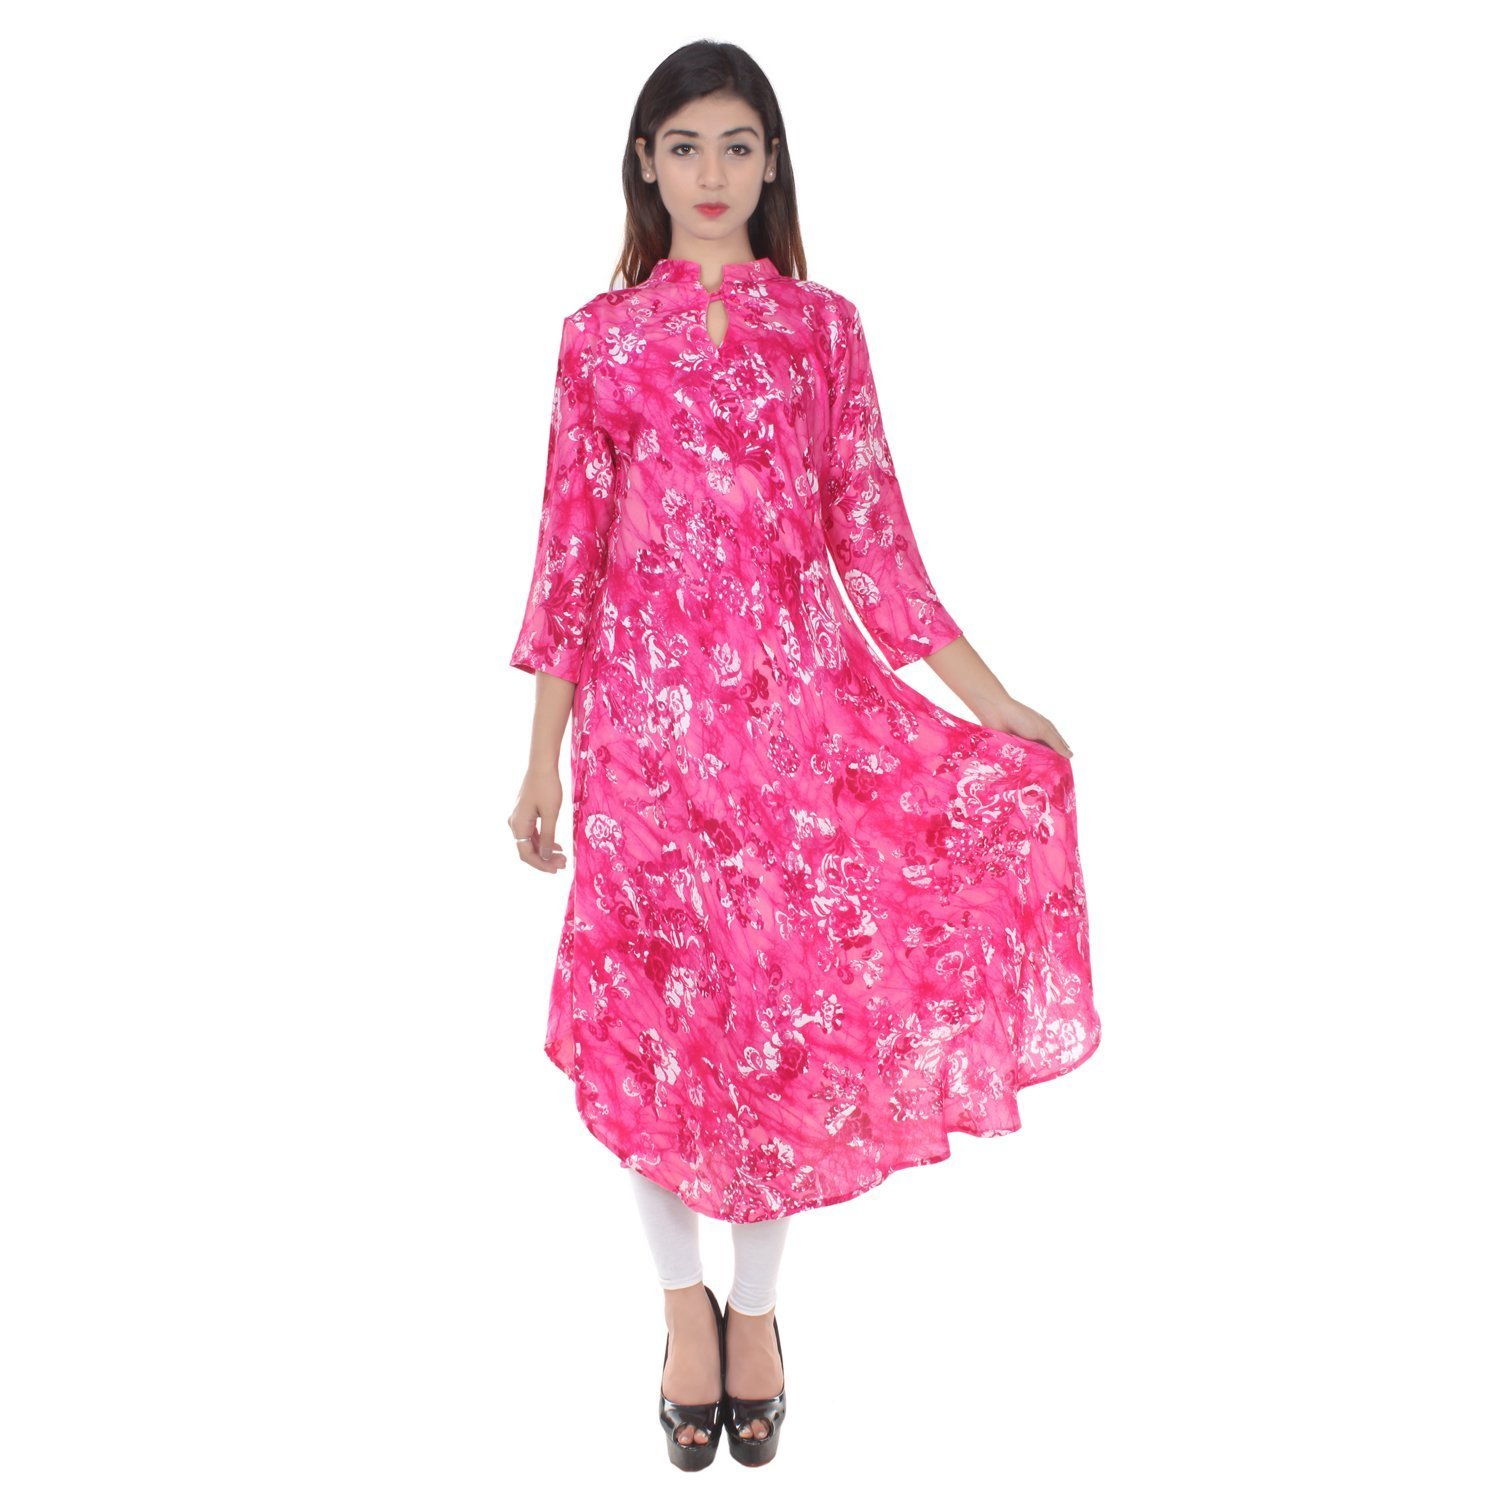 Chichi Indian Women Kurta Kurti 3/4 Sleeve Large Size Floral Print Round Anarkali Pink-White Top by CHI